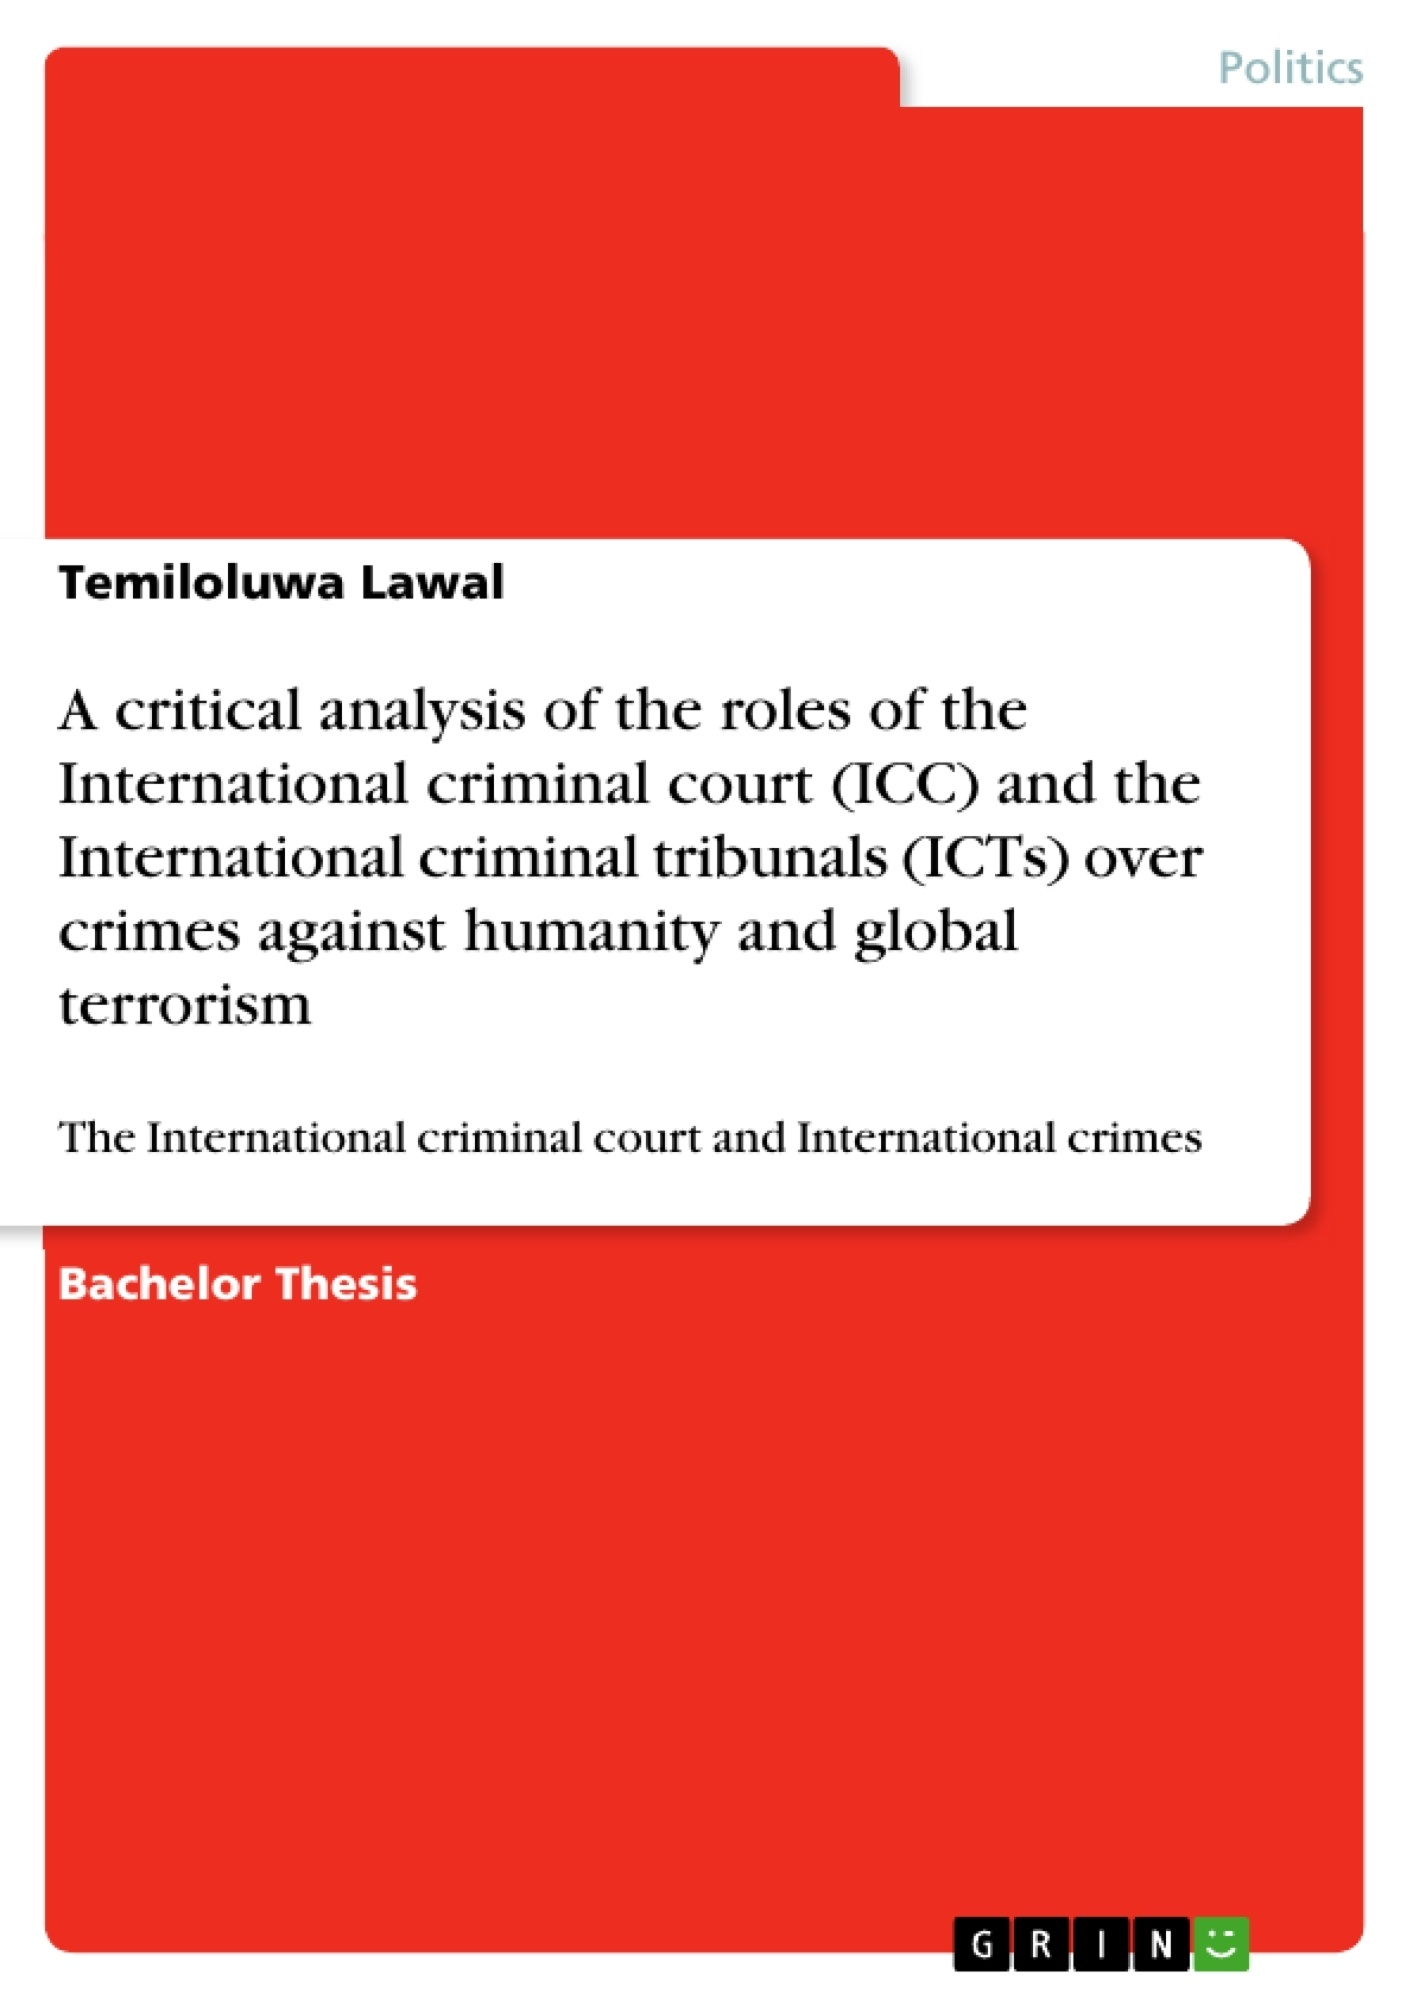 Title: A critical analysis of the roles of the International criminal court (ICC) and the International criminal tribunals (ICTs) over crimes against humanity and global terrorism